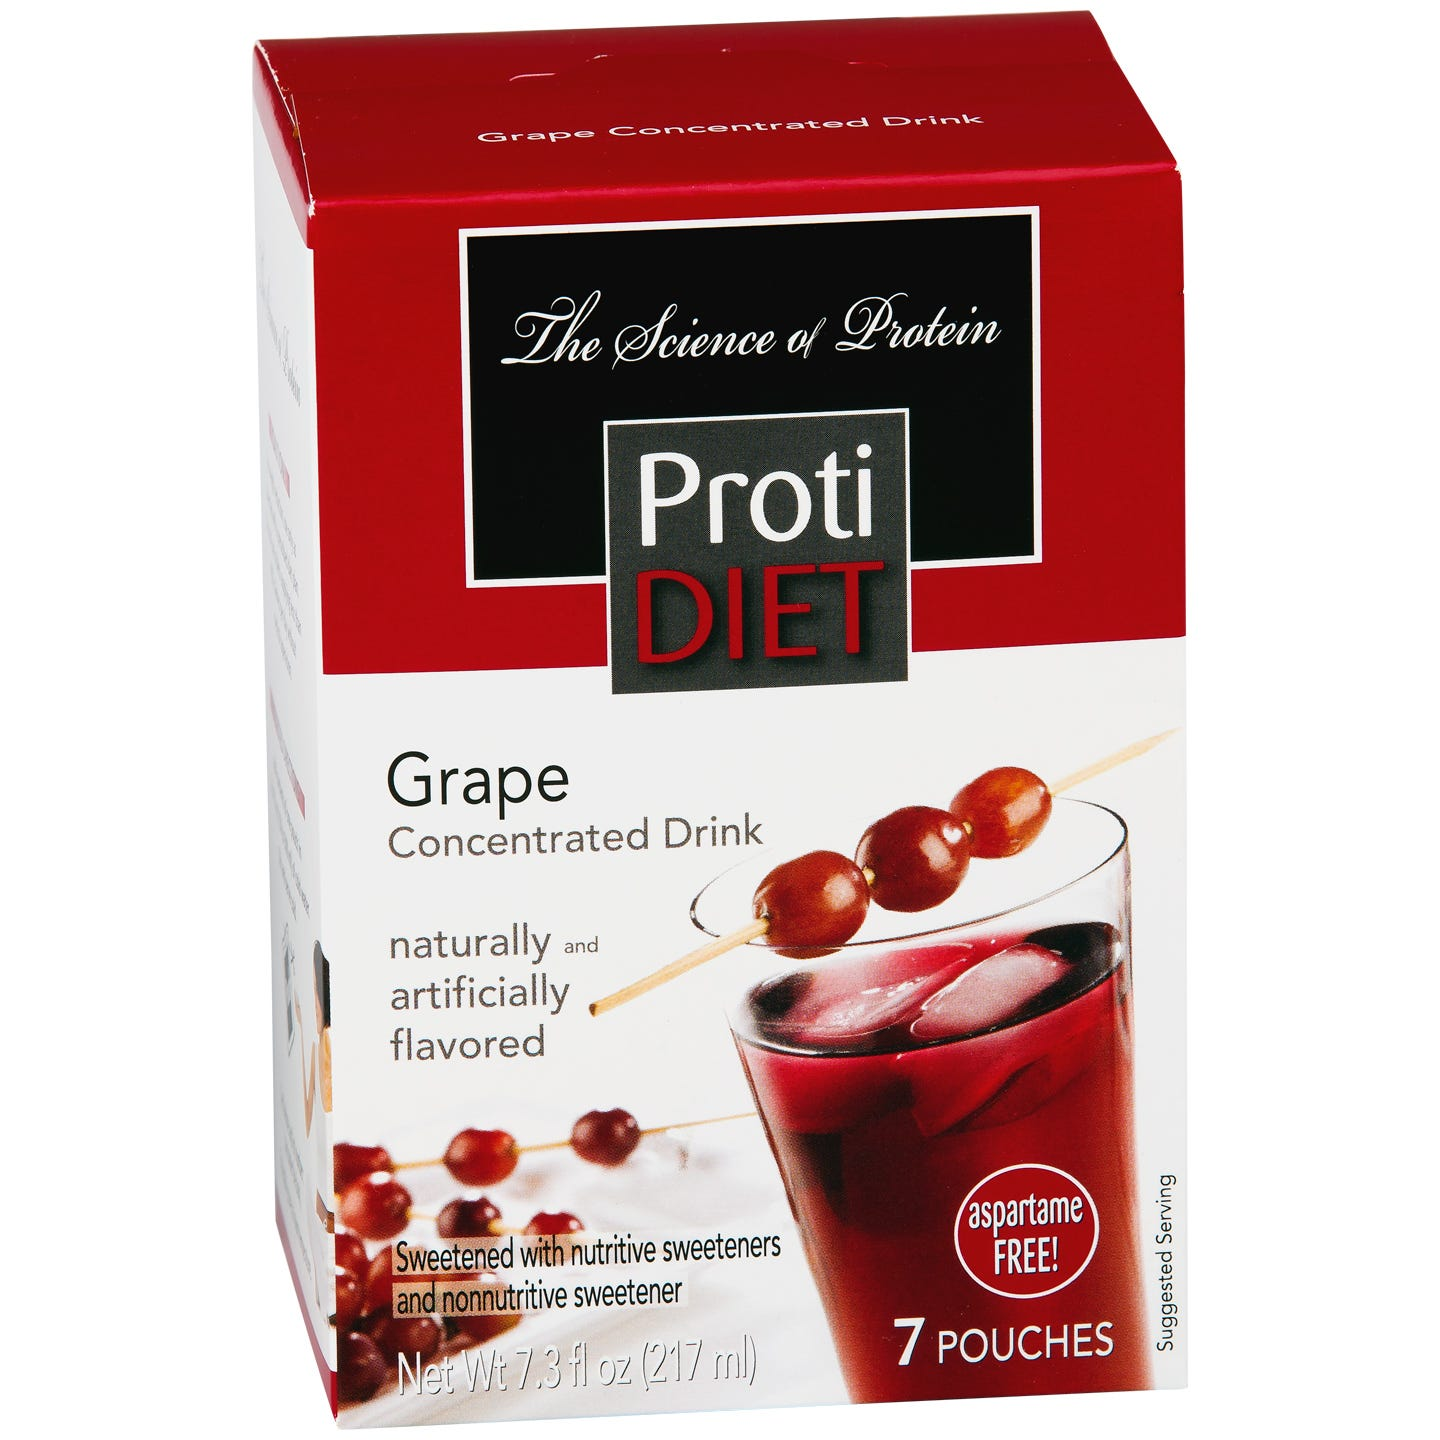 Protein Fruit Drink Concentrate Grape (7 ct) - ProtiDiet - Rapid Diet Weight Loss Products Shop